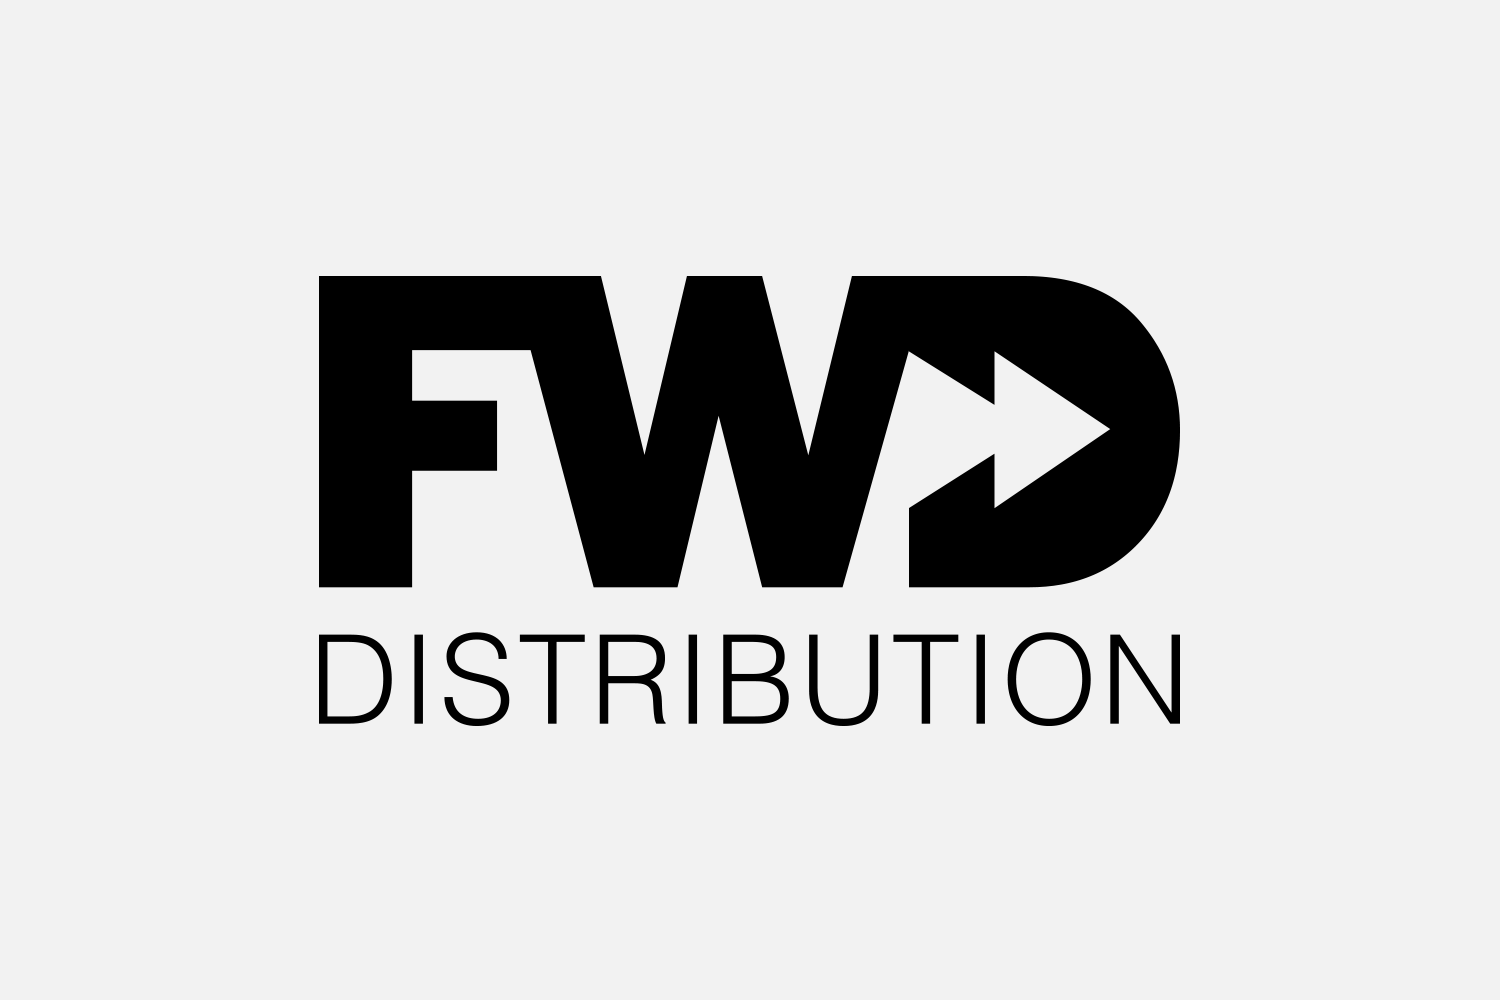 LOGO DESIGN - FWD DISTRIBUTION